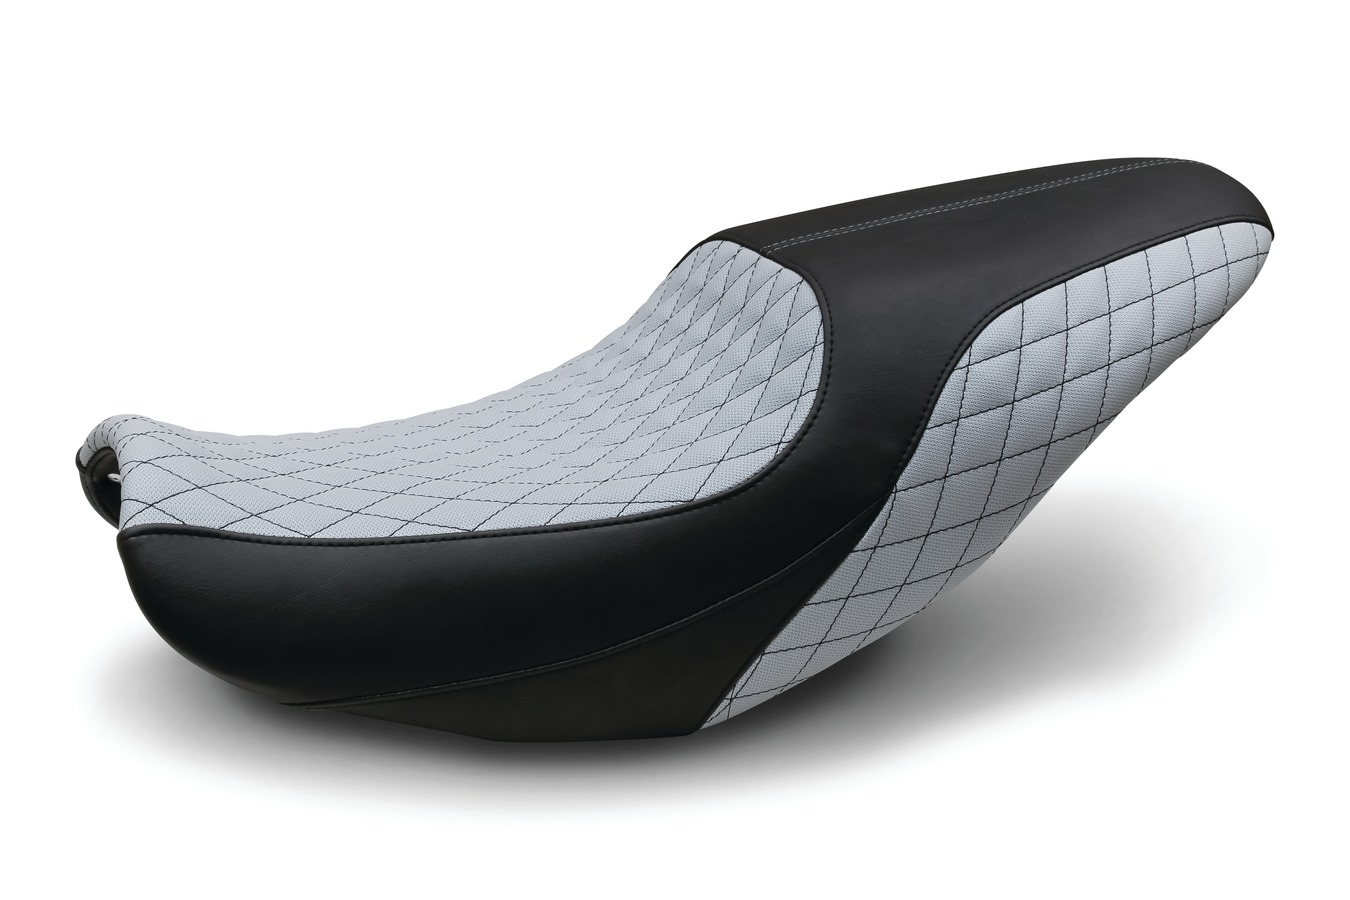 Revere Journey One-Piece Seat for Ducati Scrambler 800 2015-